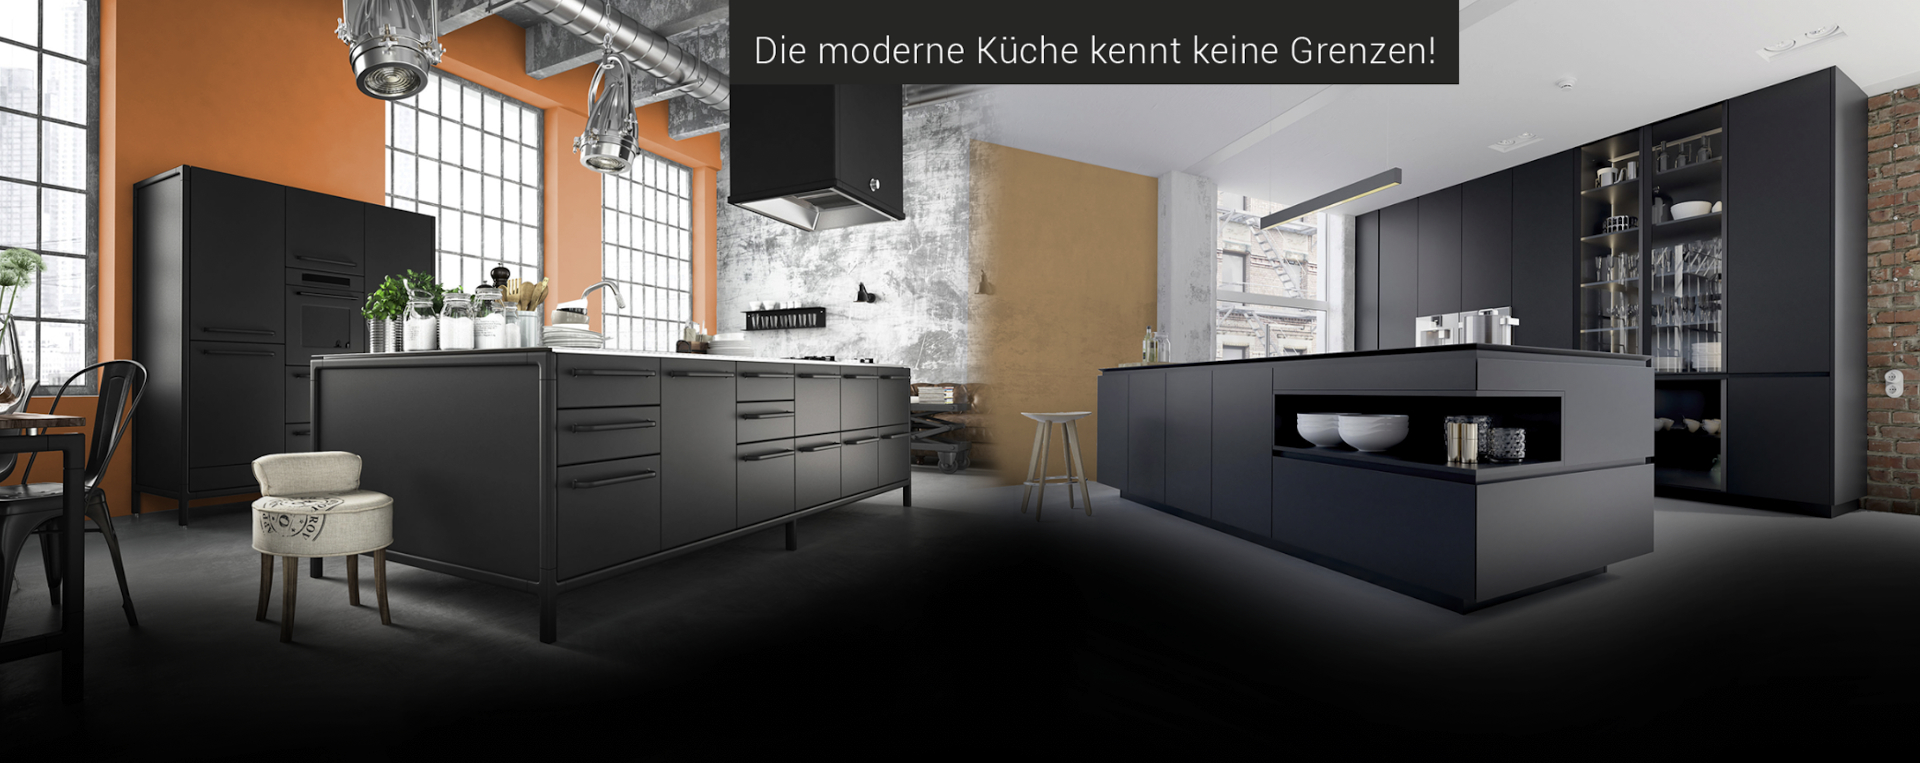 kitchen.image_